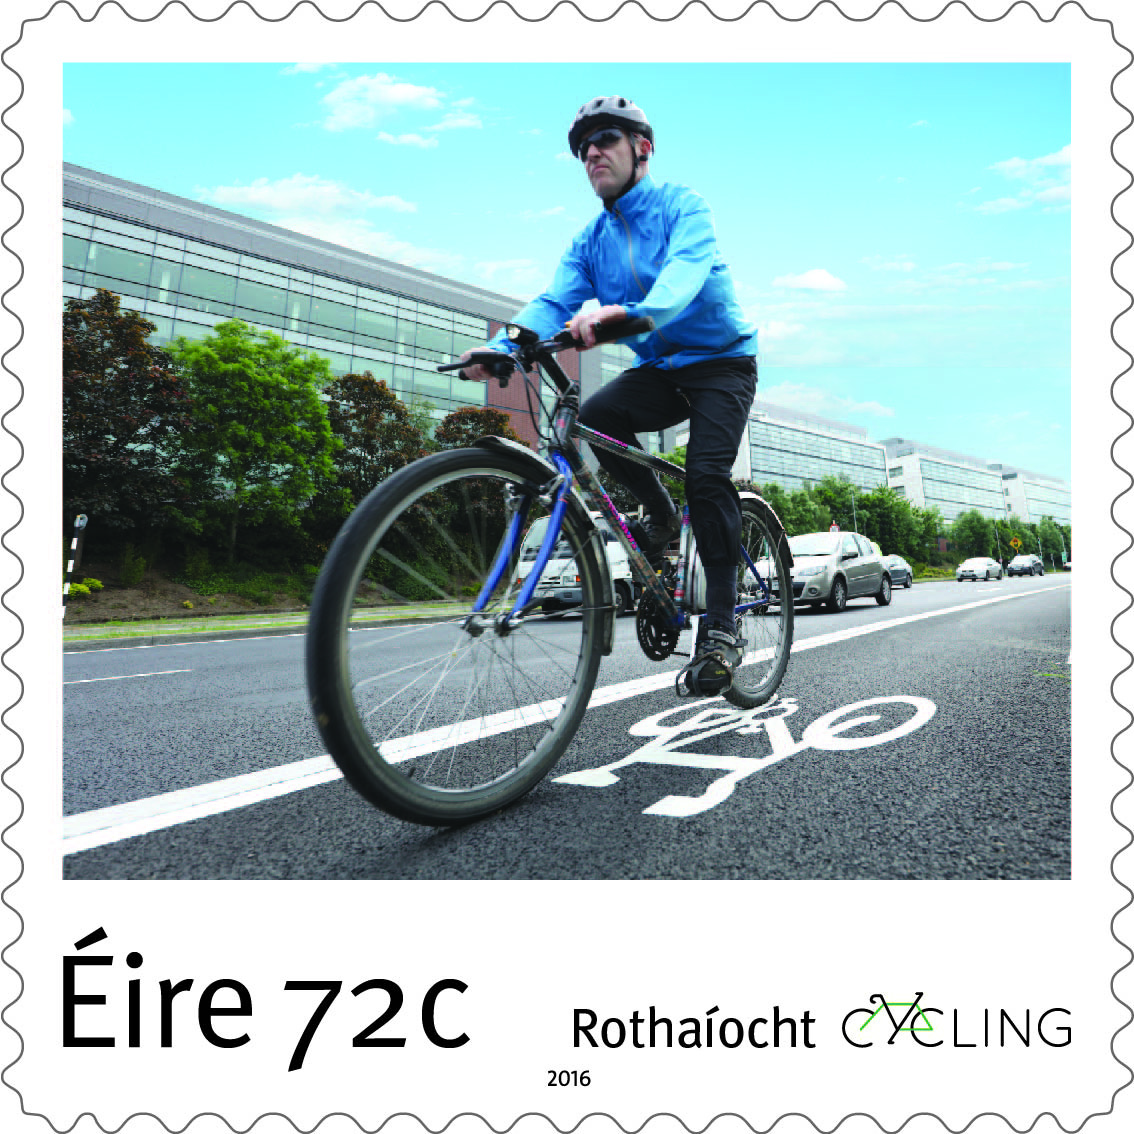 L8967 - An Post Cycling Ireland Stamp 1_AW